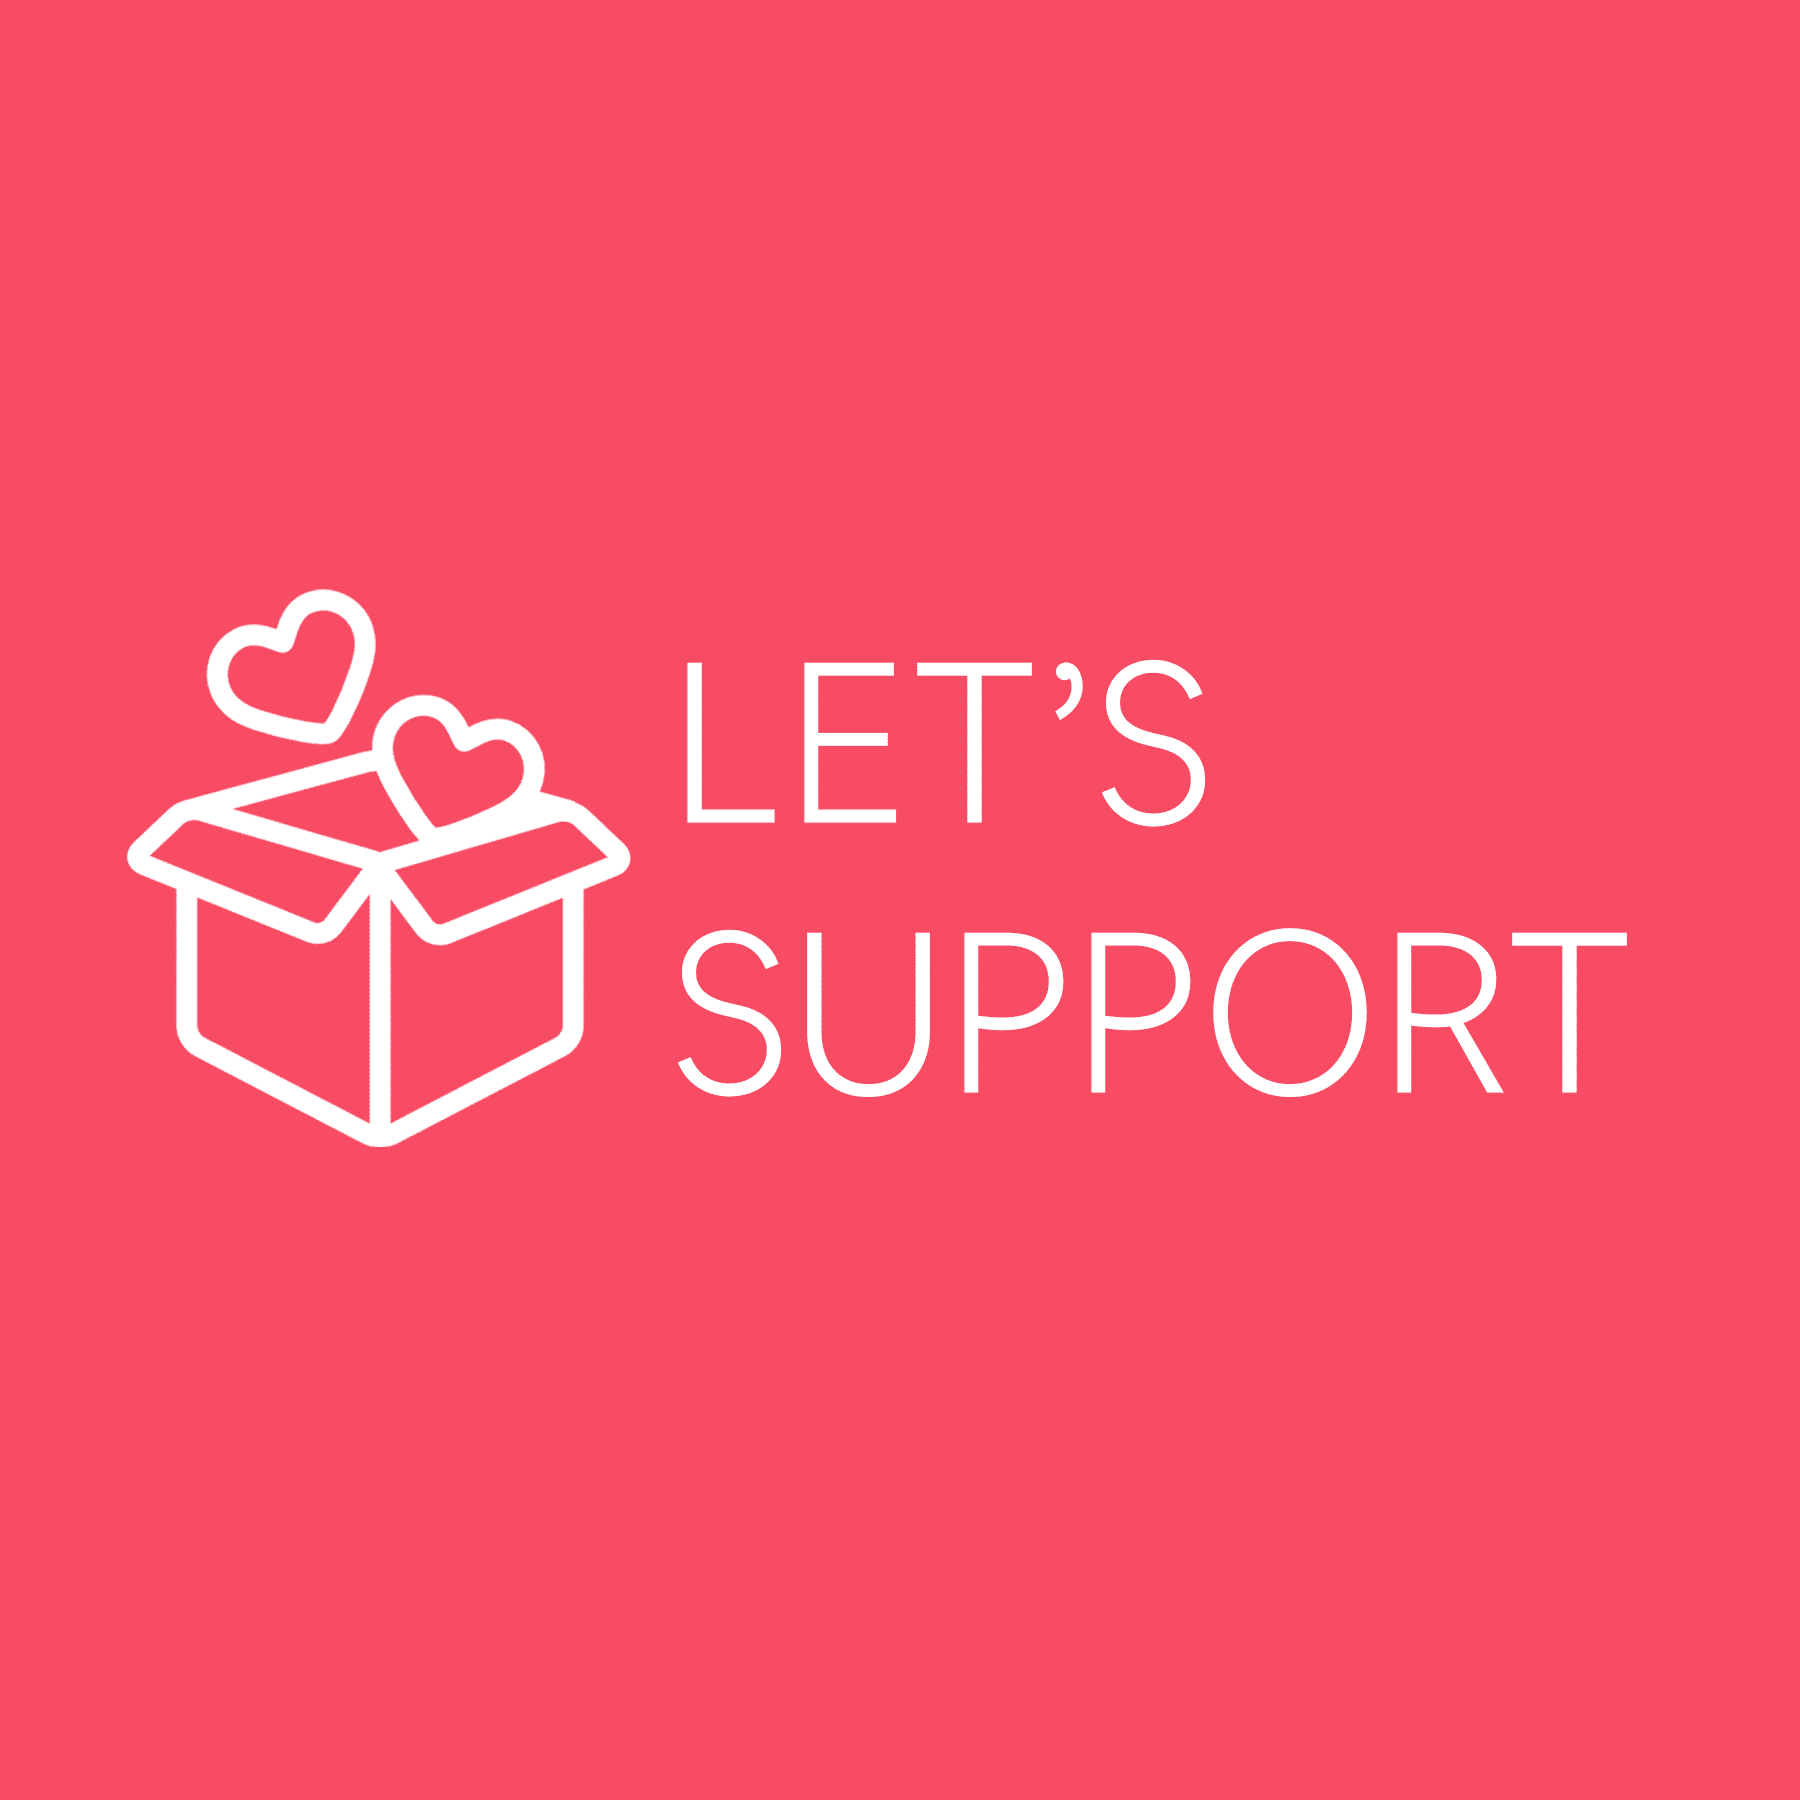 let's support logo square